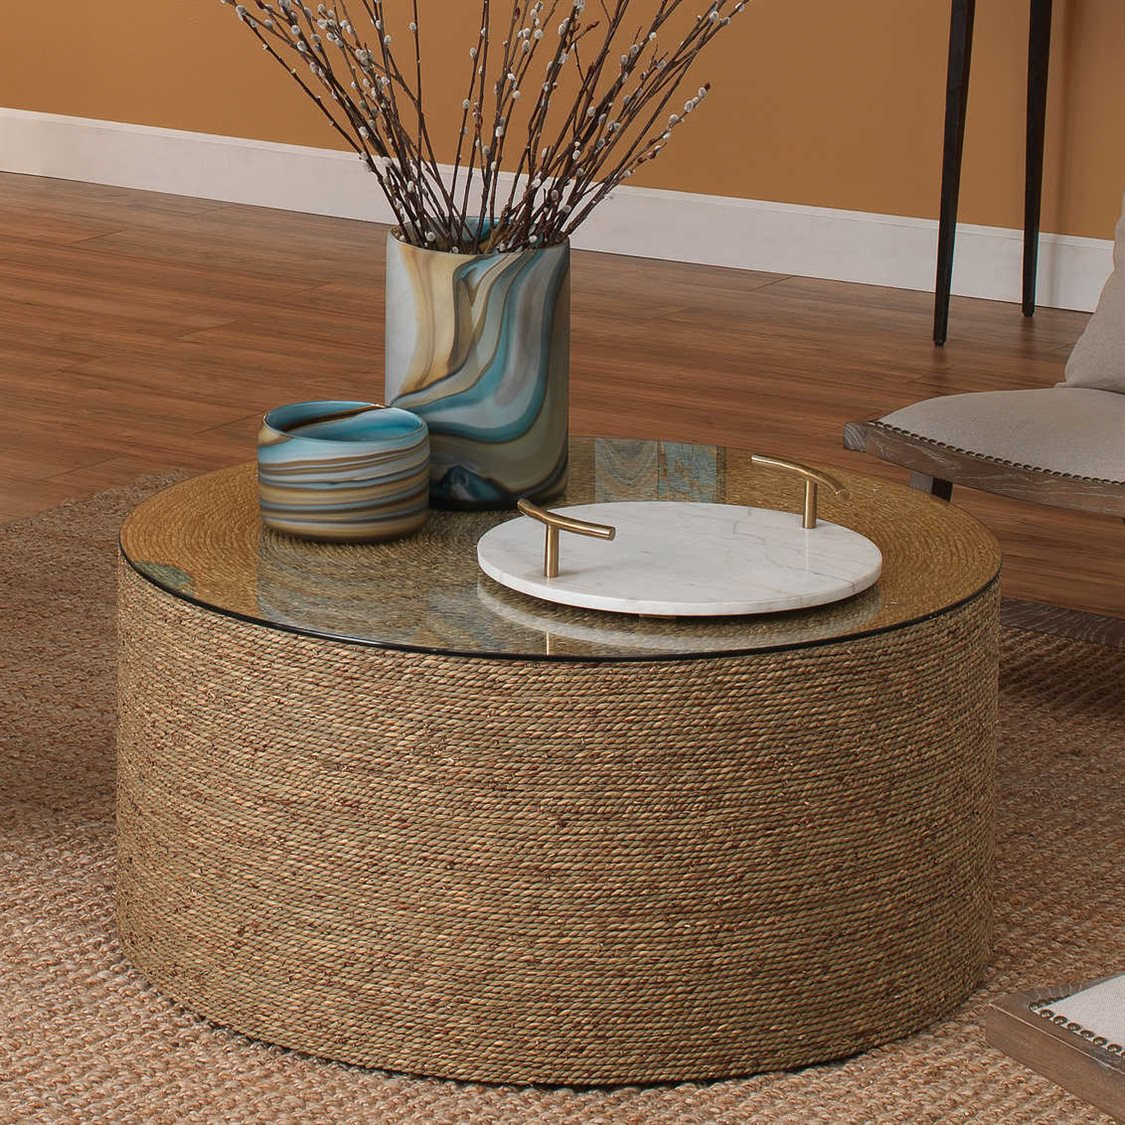 Jamie Young Company Harbor Natural Seagrass 36 Wide Round Coffee Table Jyc20harbctna [ 1125 x 1125 Pixel ]